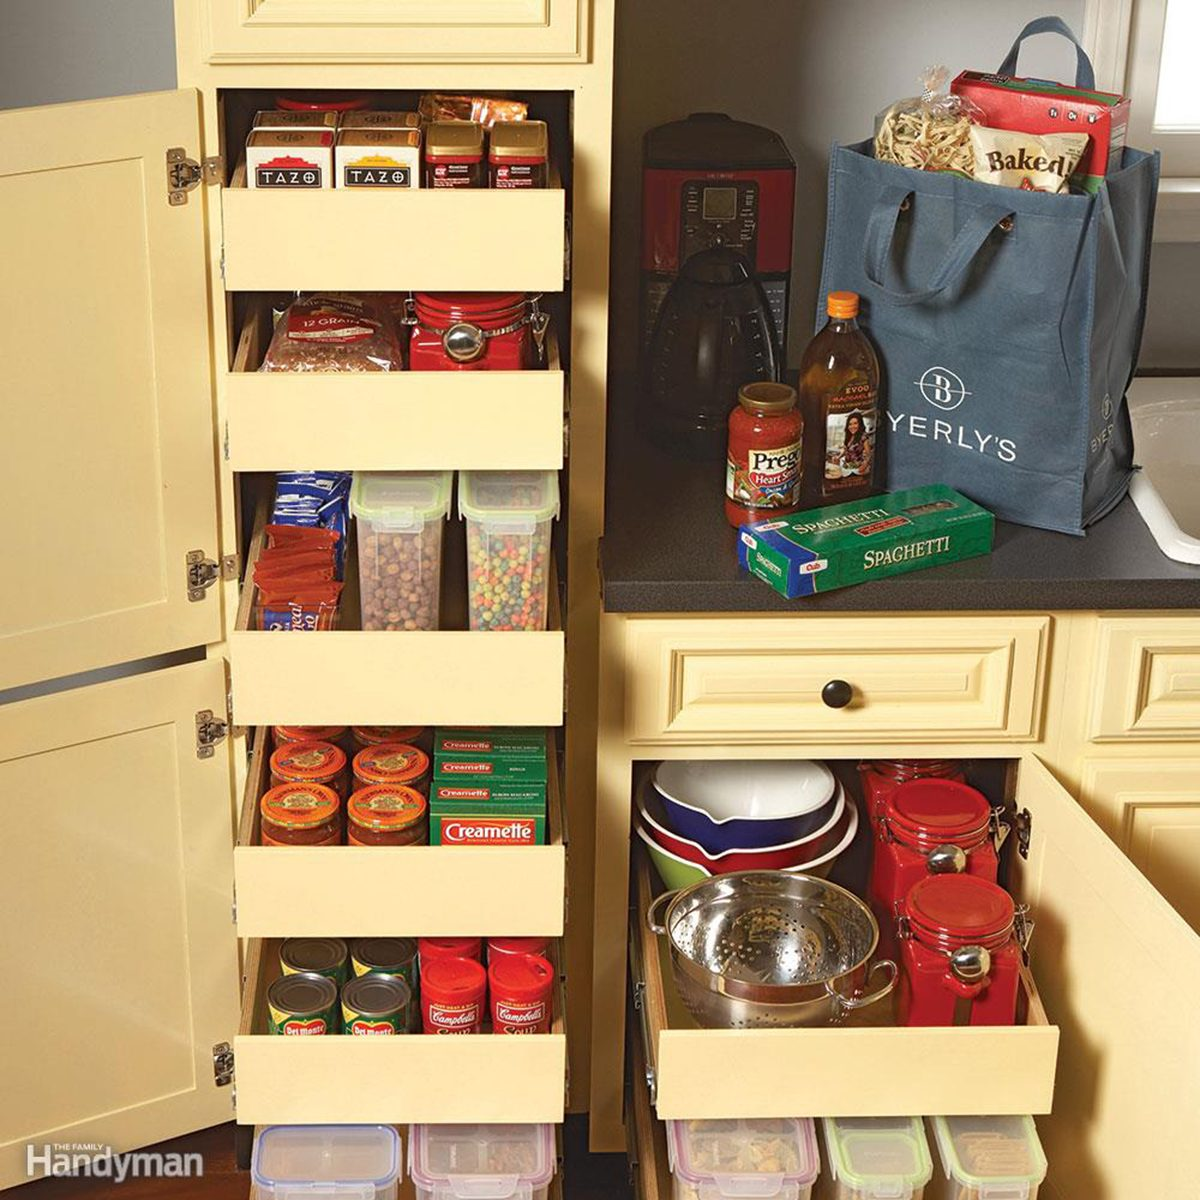 Multiple roll-out drawers filled with items